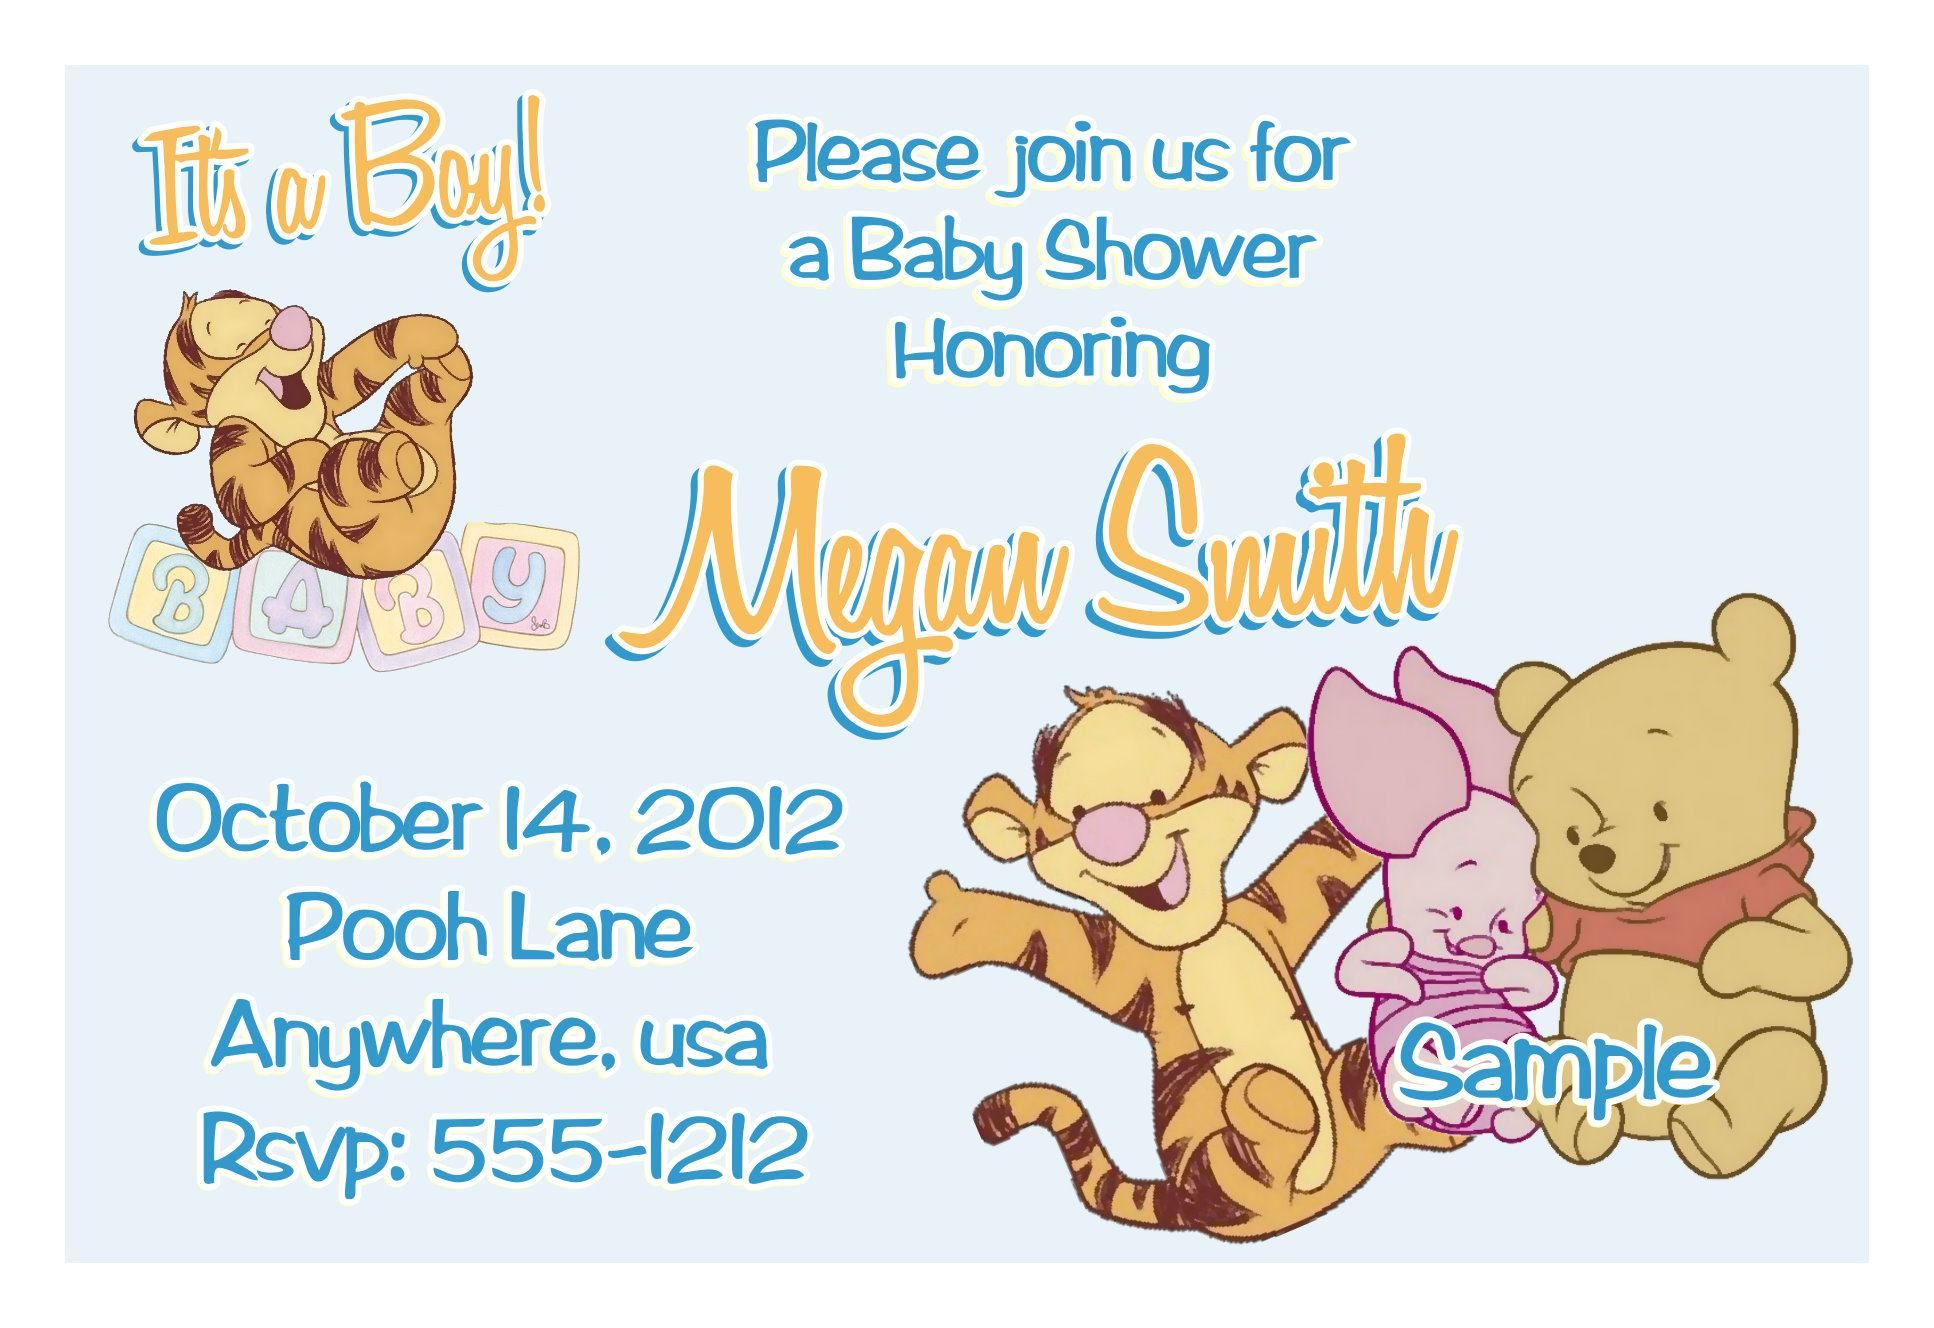 Baby Shower Invitation Cards Baby Shower Invitation Cards Samples